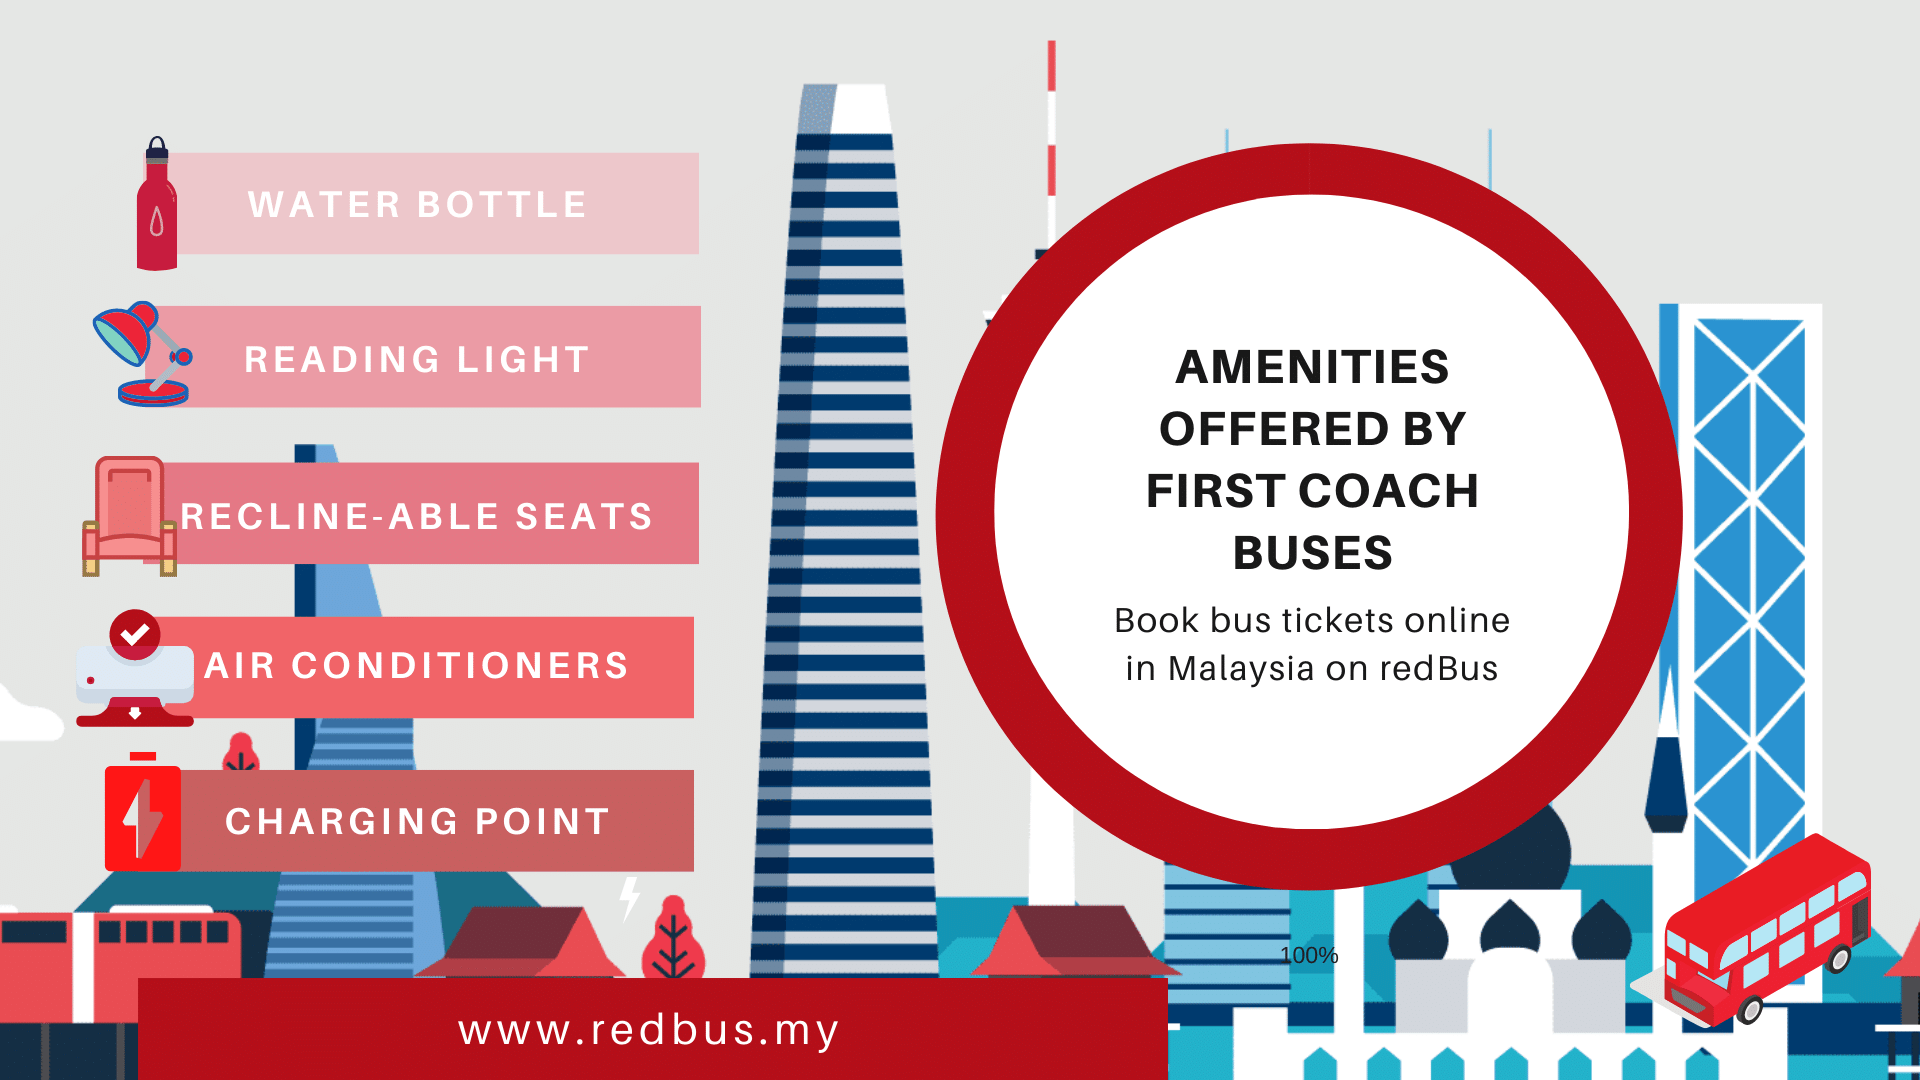 Amenities offered by First Coach Bus Malaysia